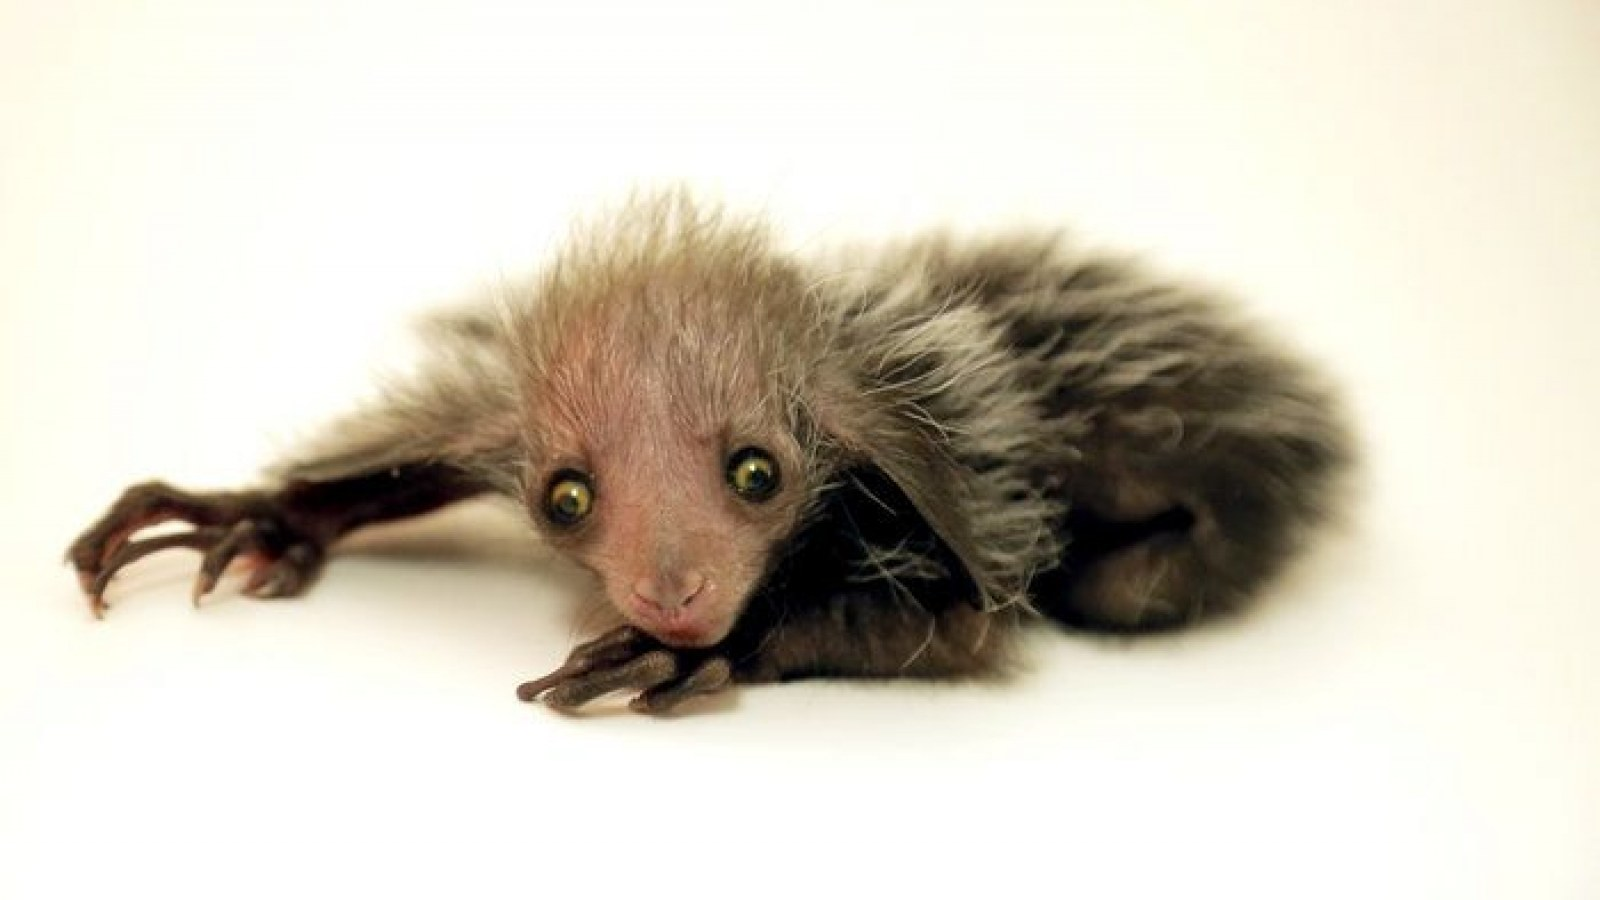 Ugliest Animal Ever? Denver Zoo's Newborn Endangered Aye-aye Lemur Prompts  Debate